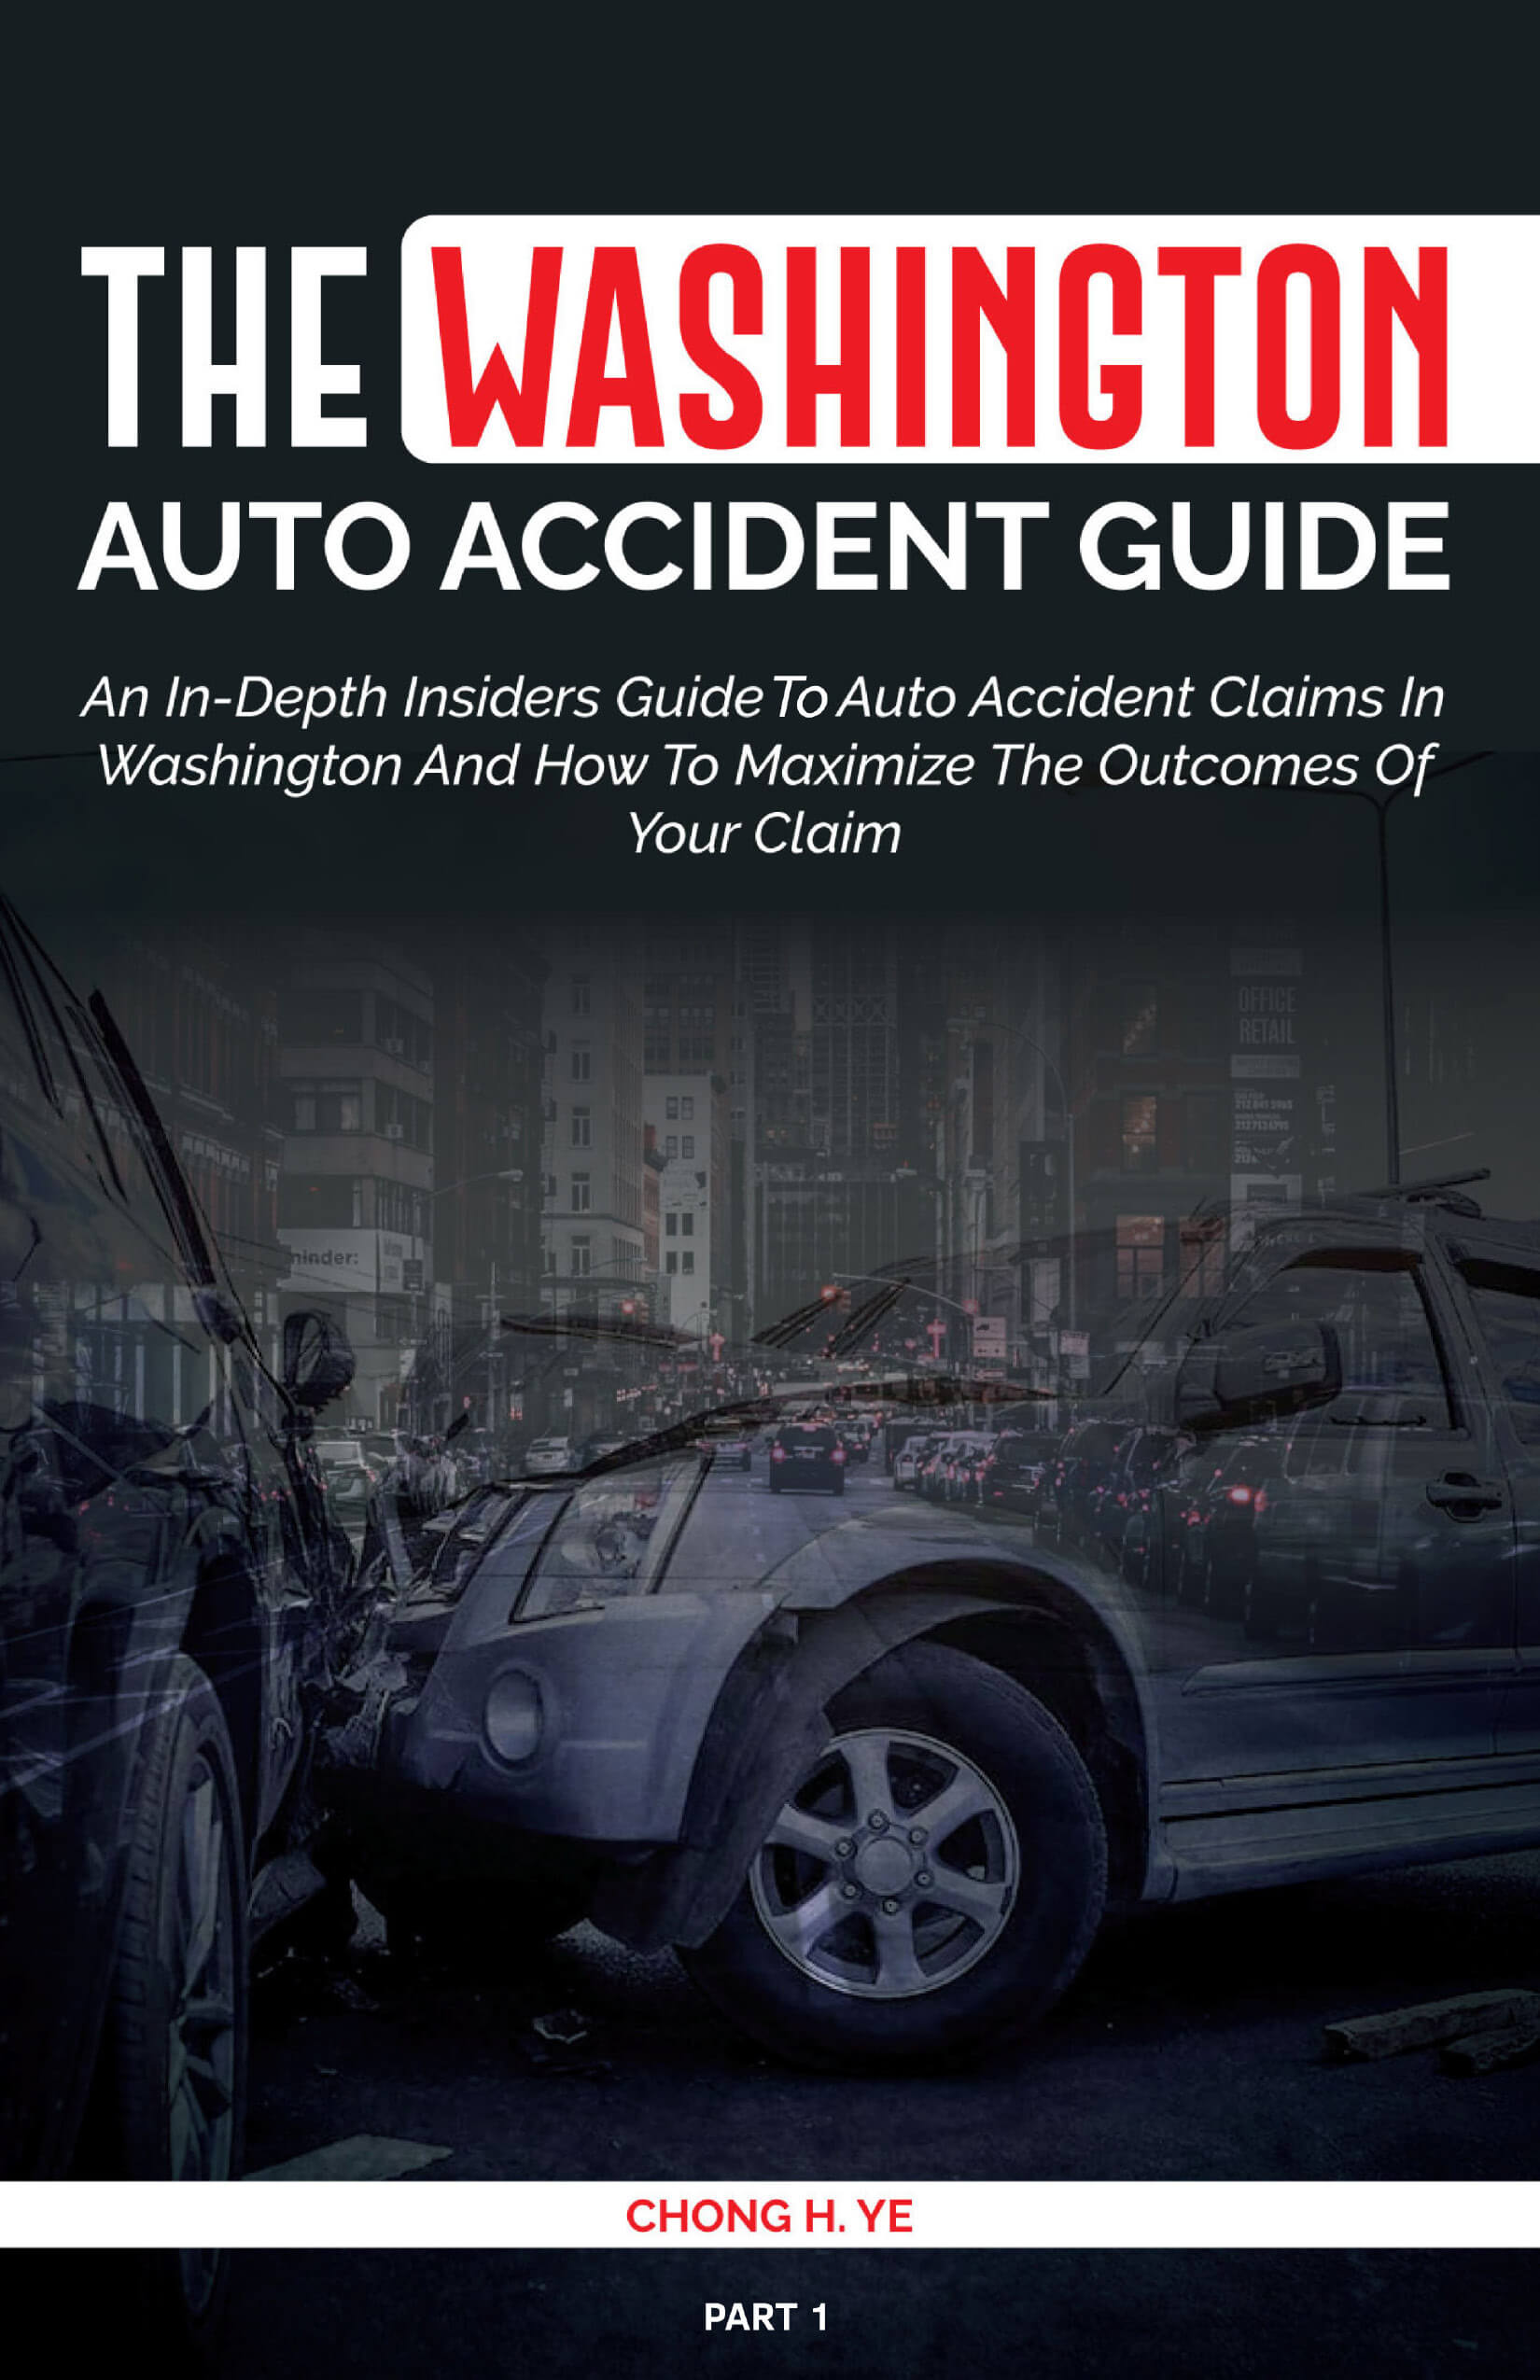 book cover with a car's smashed front end; book title The Washington Auto Accident Guide part 1